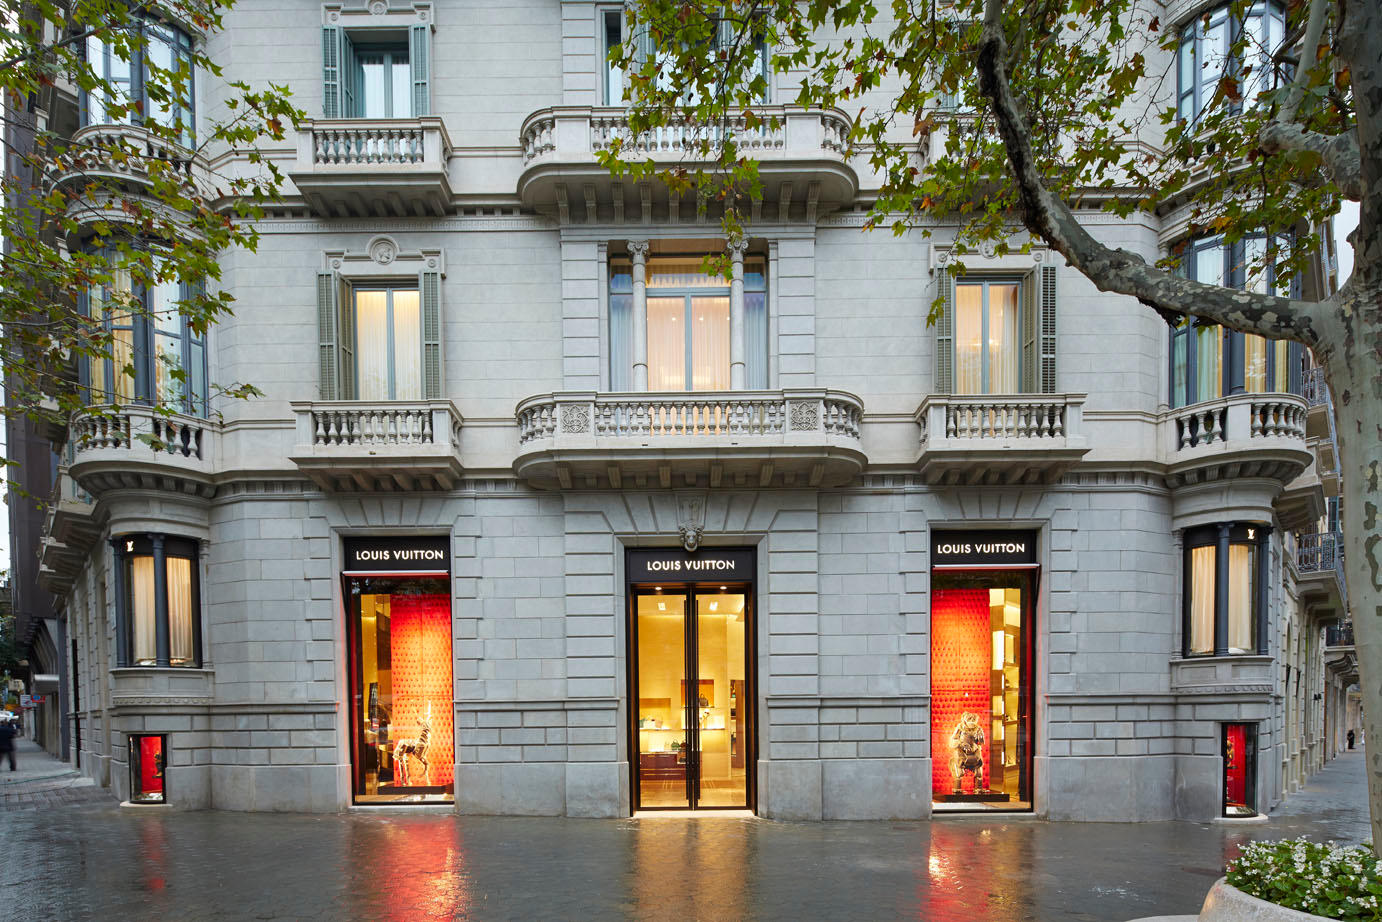 Louis Vuitton Barcelona Paseo De Gracia